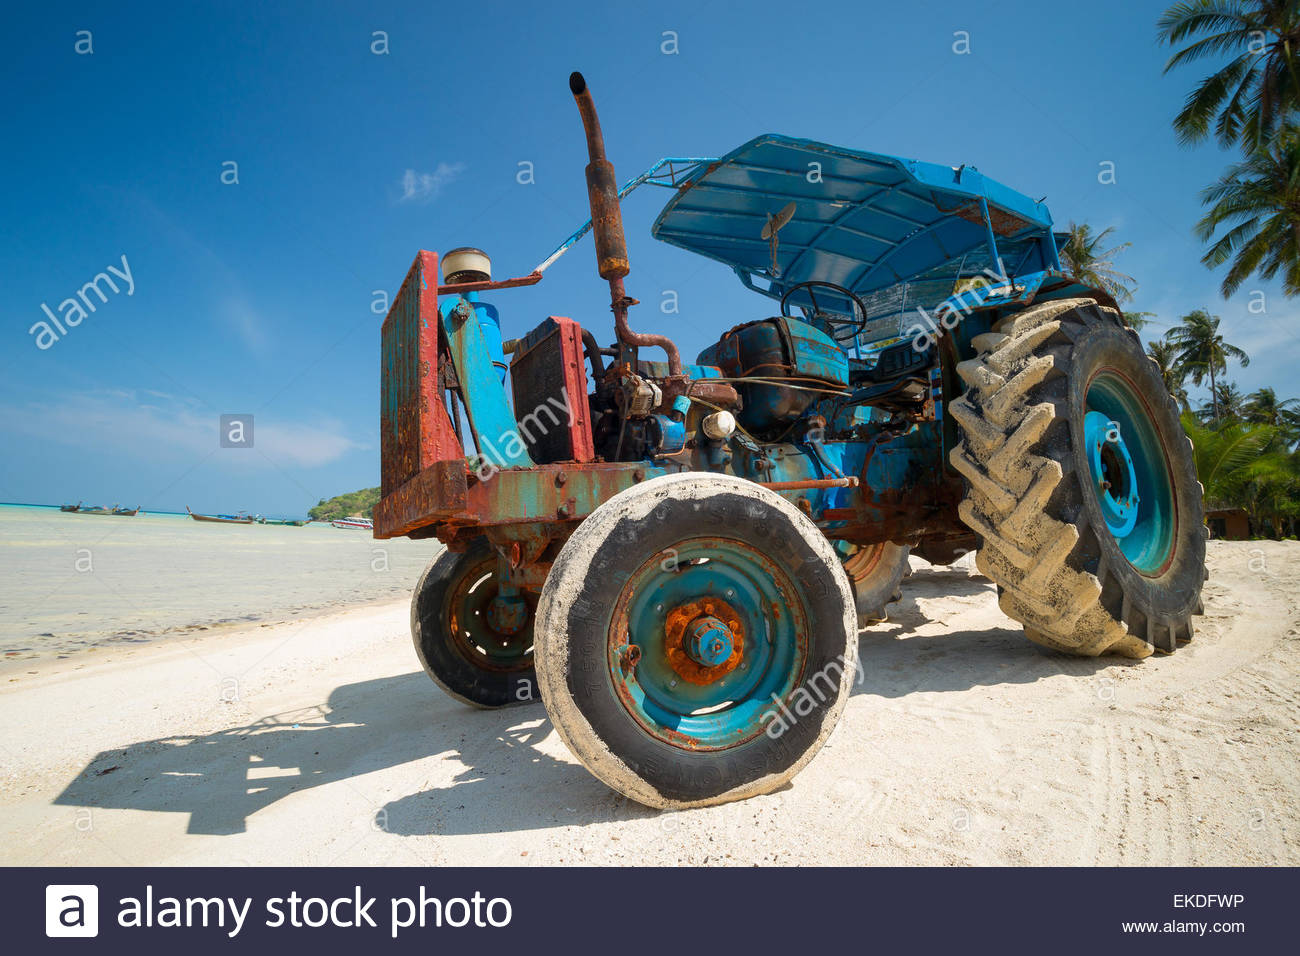 blue-tractor-on-a-beach-used-to-carry-pe